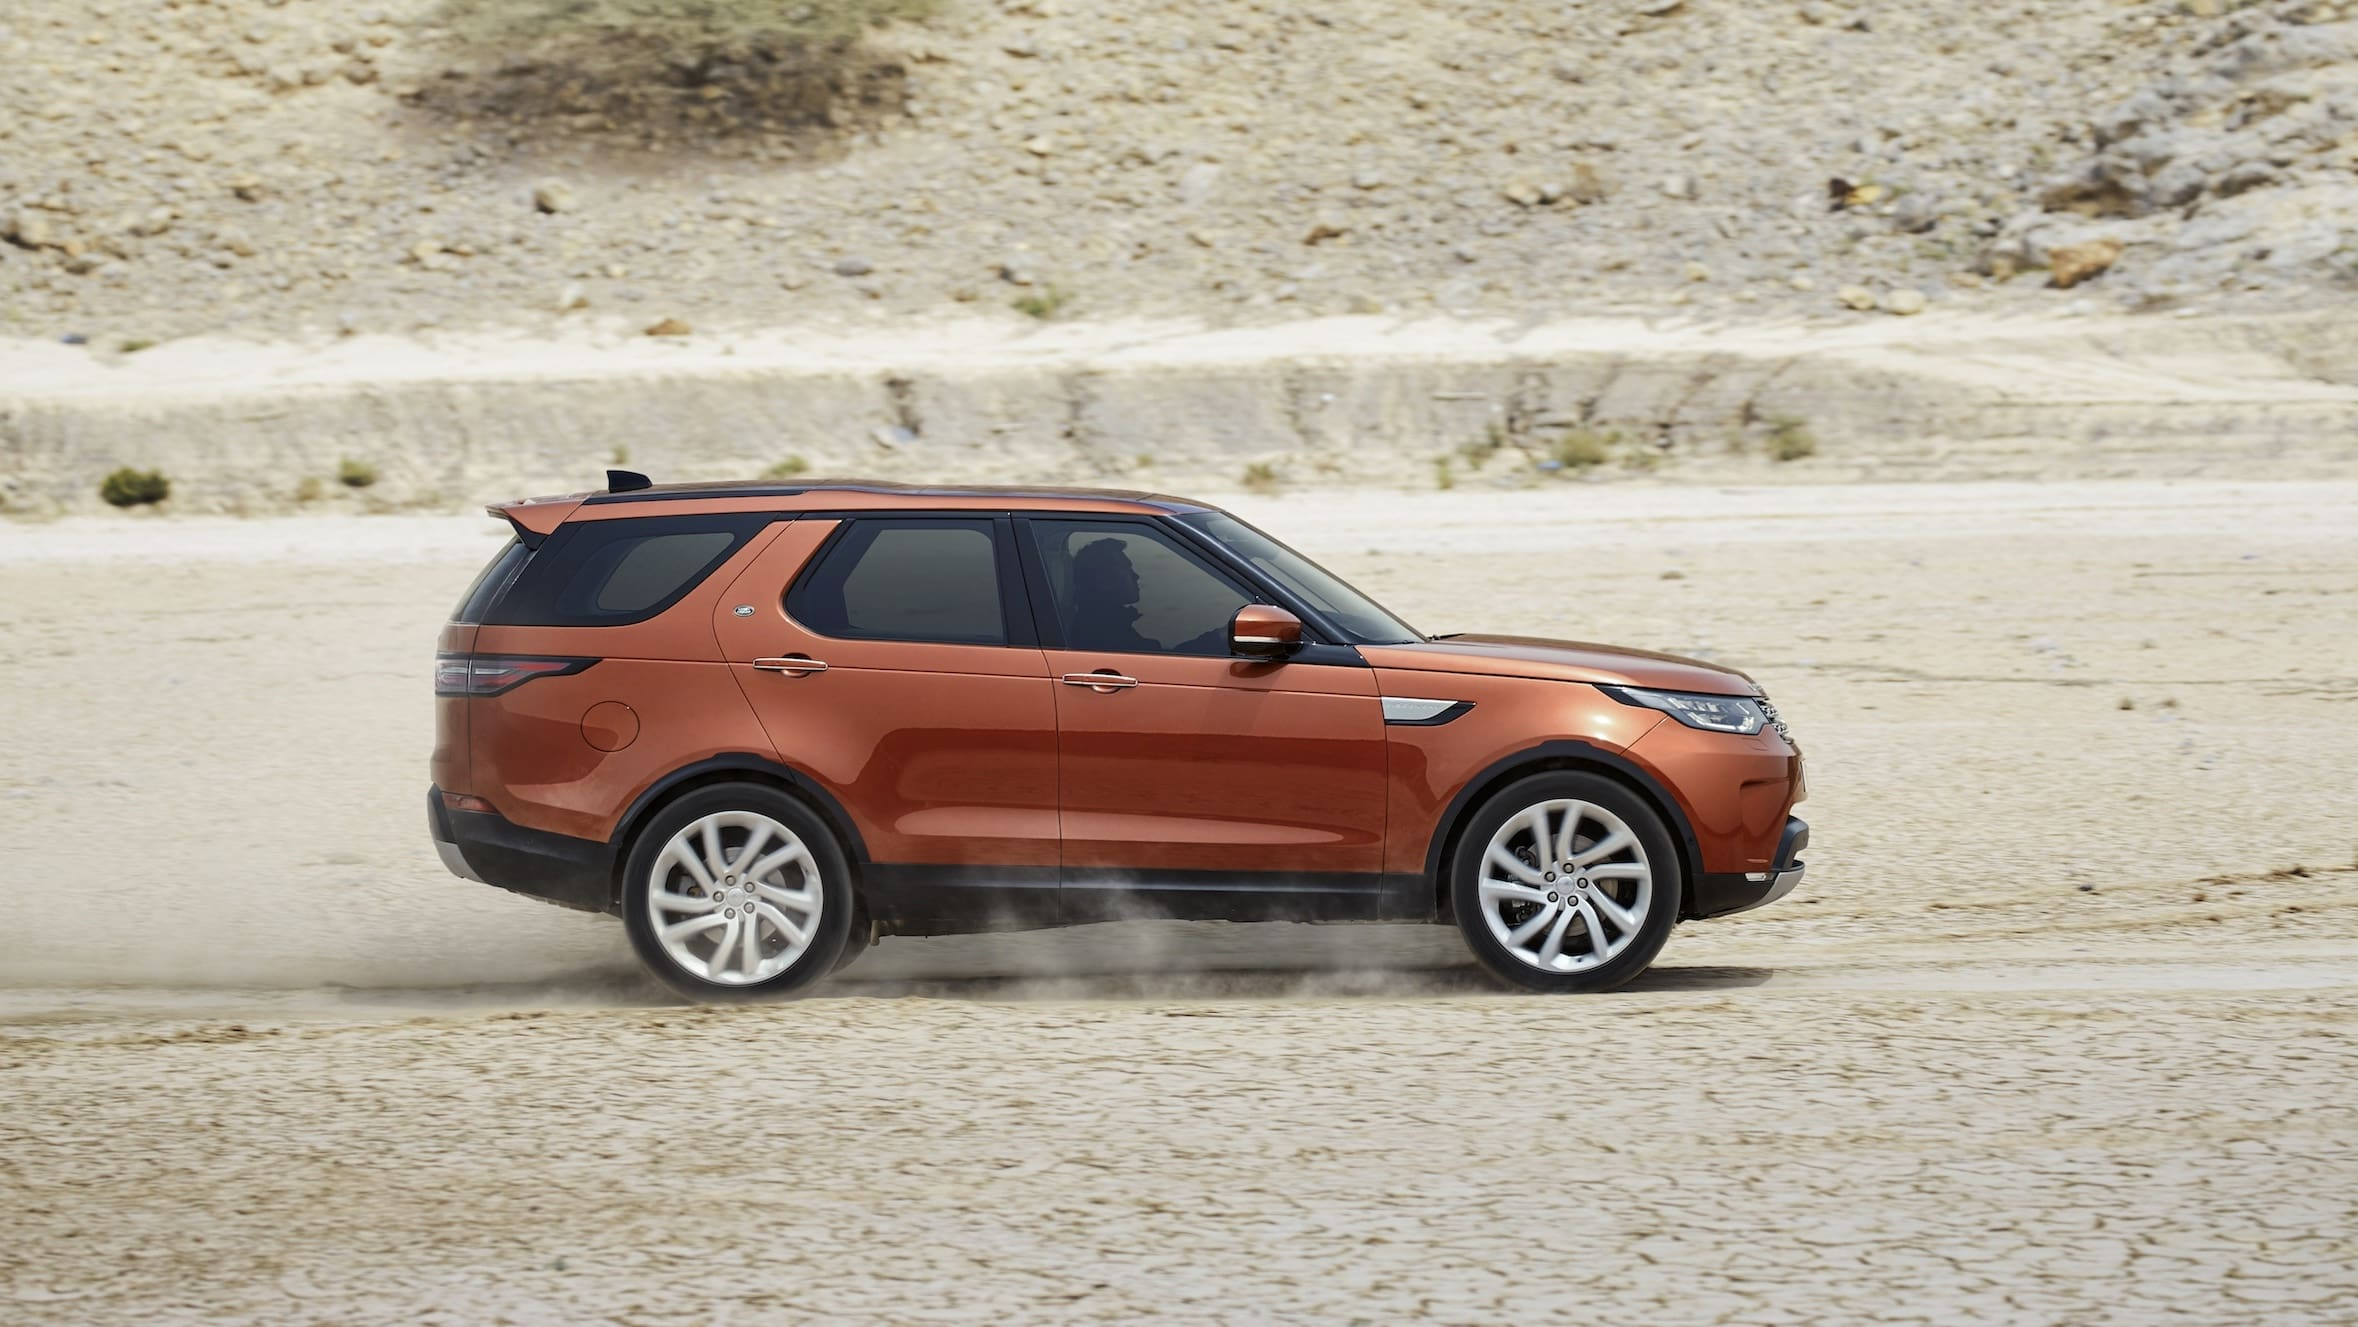 2017 land rover discovery pricing revealed  update